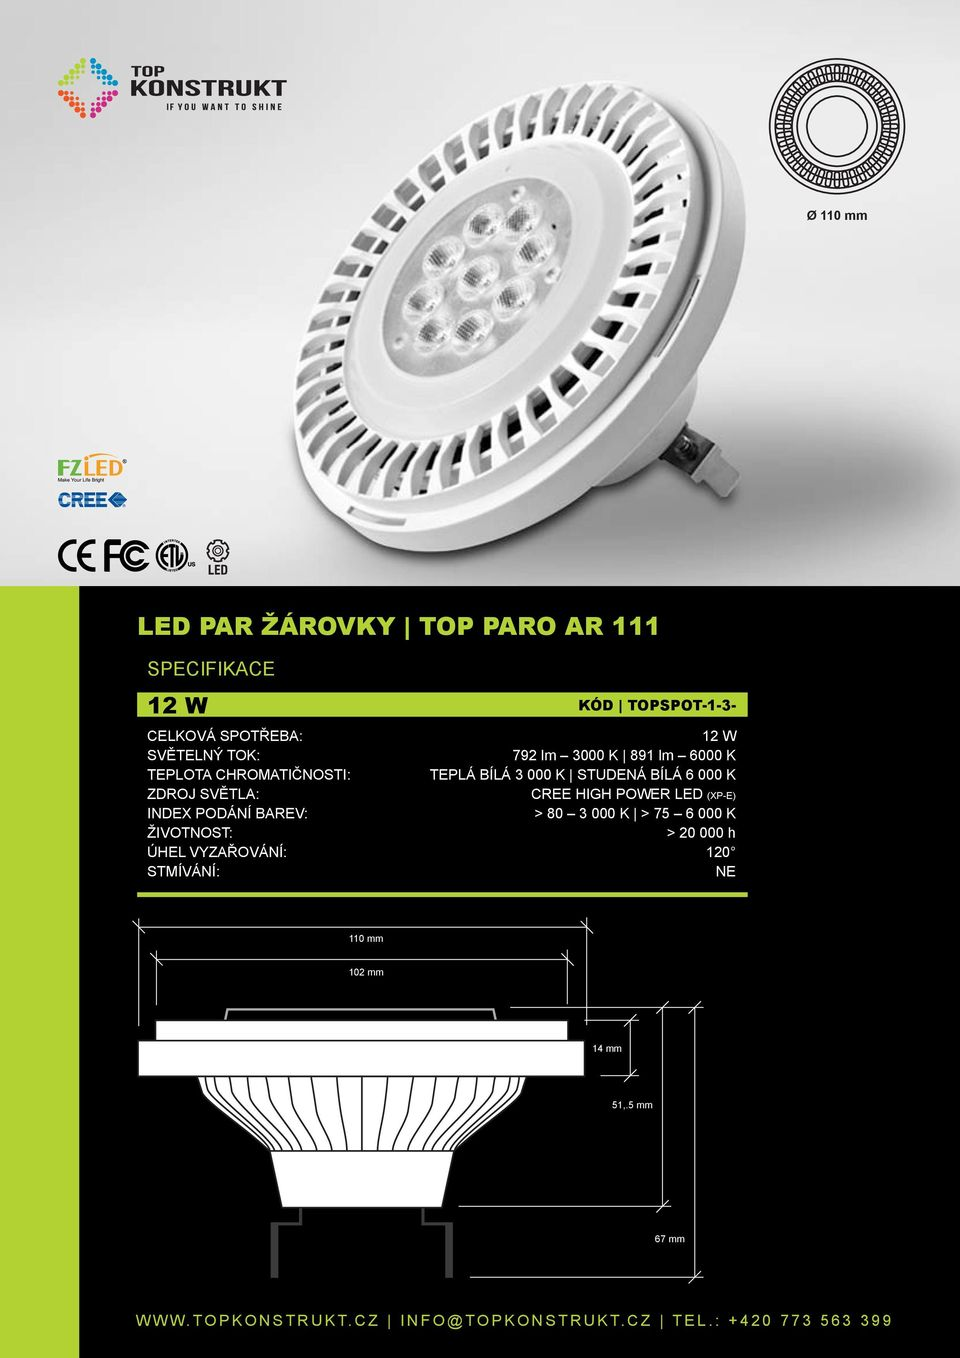 CREE HIGH POWER LED (XP-E) INDEX PODÁNÍ BAREV: > 80 3 000 K > 75 6 000 K >